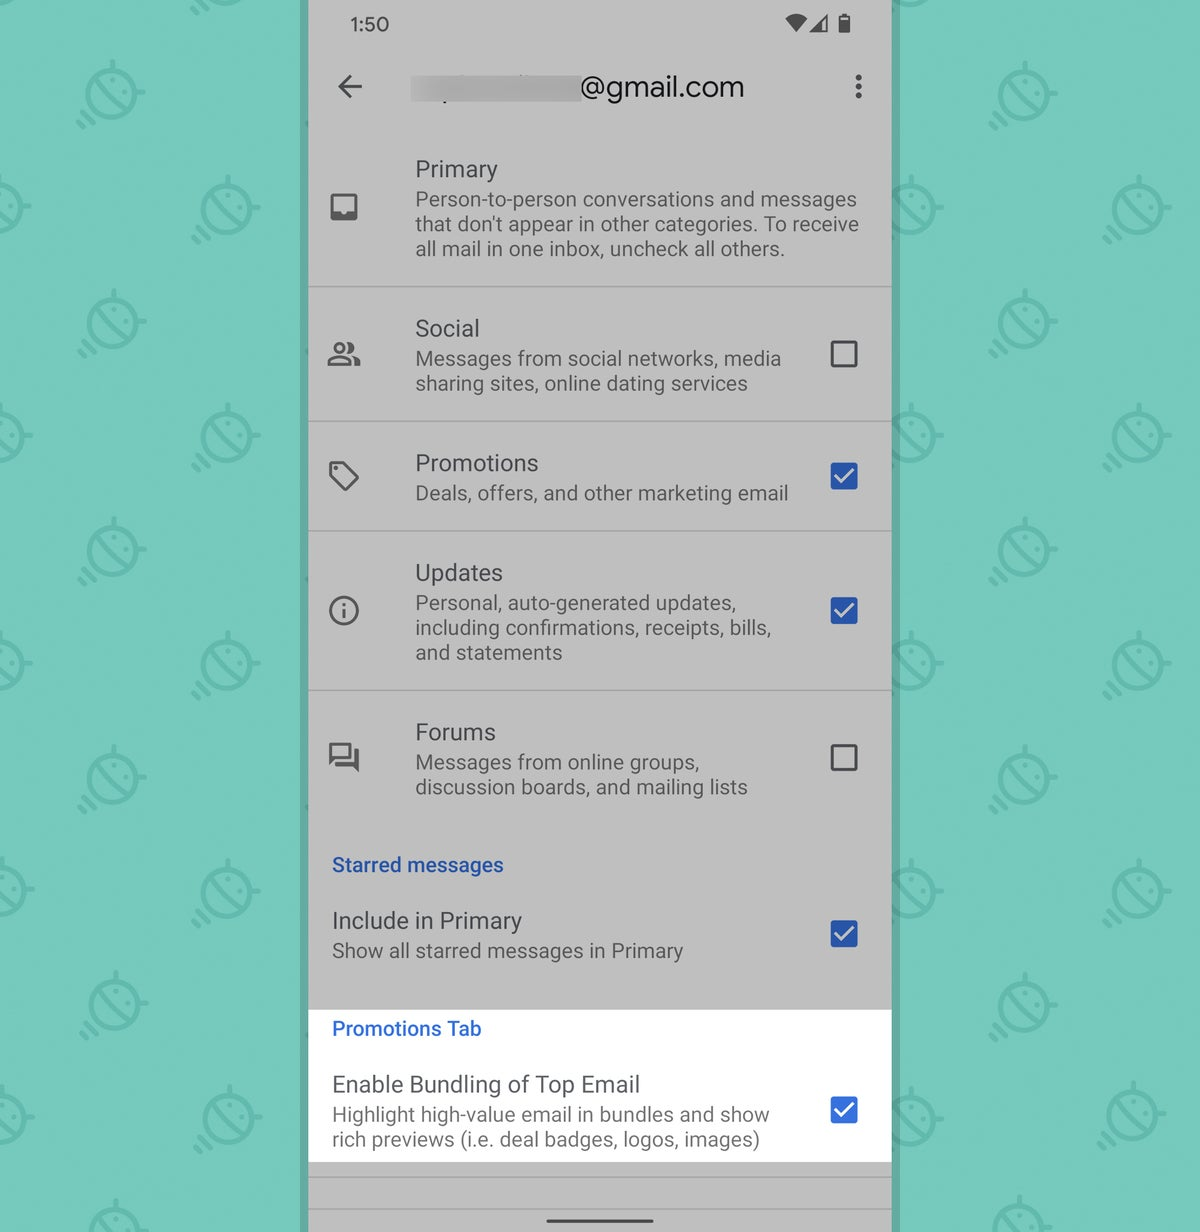 Gmail app for Android: settings for promotions